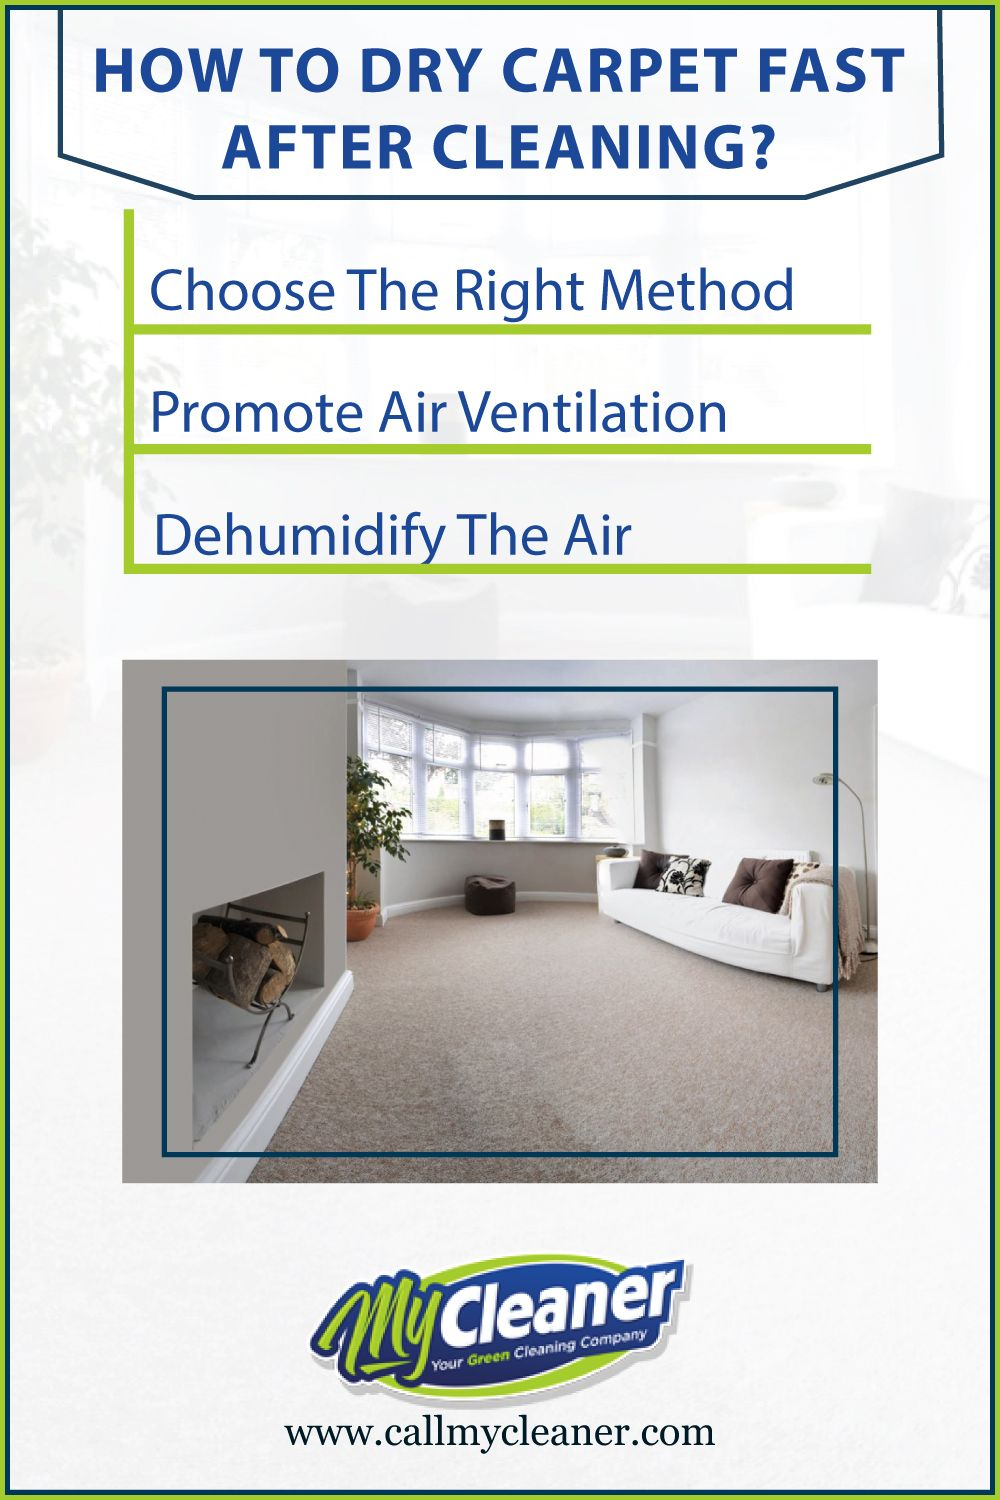 How To Dry Carpet Fast After Cleaning In 2020 How To Clean Carpet Professional Carpet Cleaning Carpet